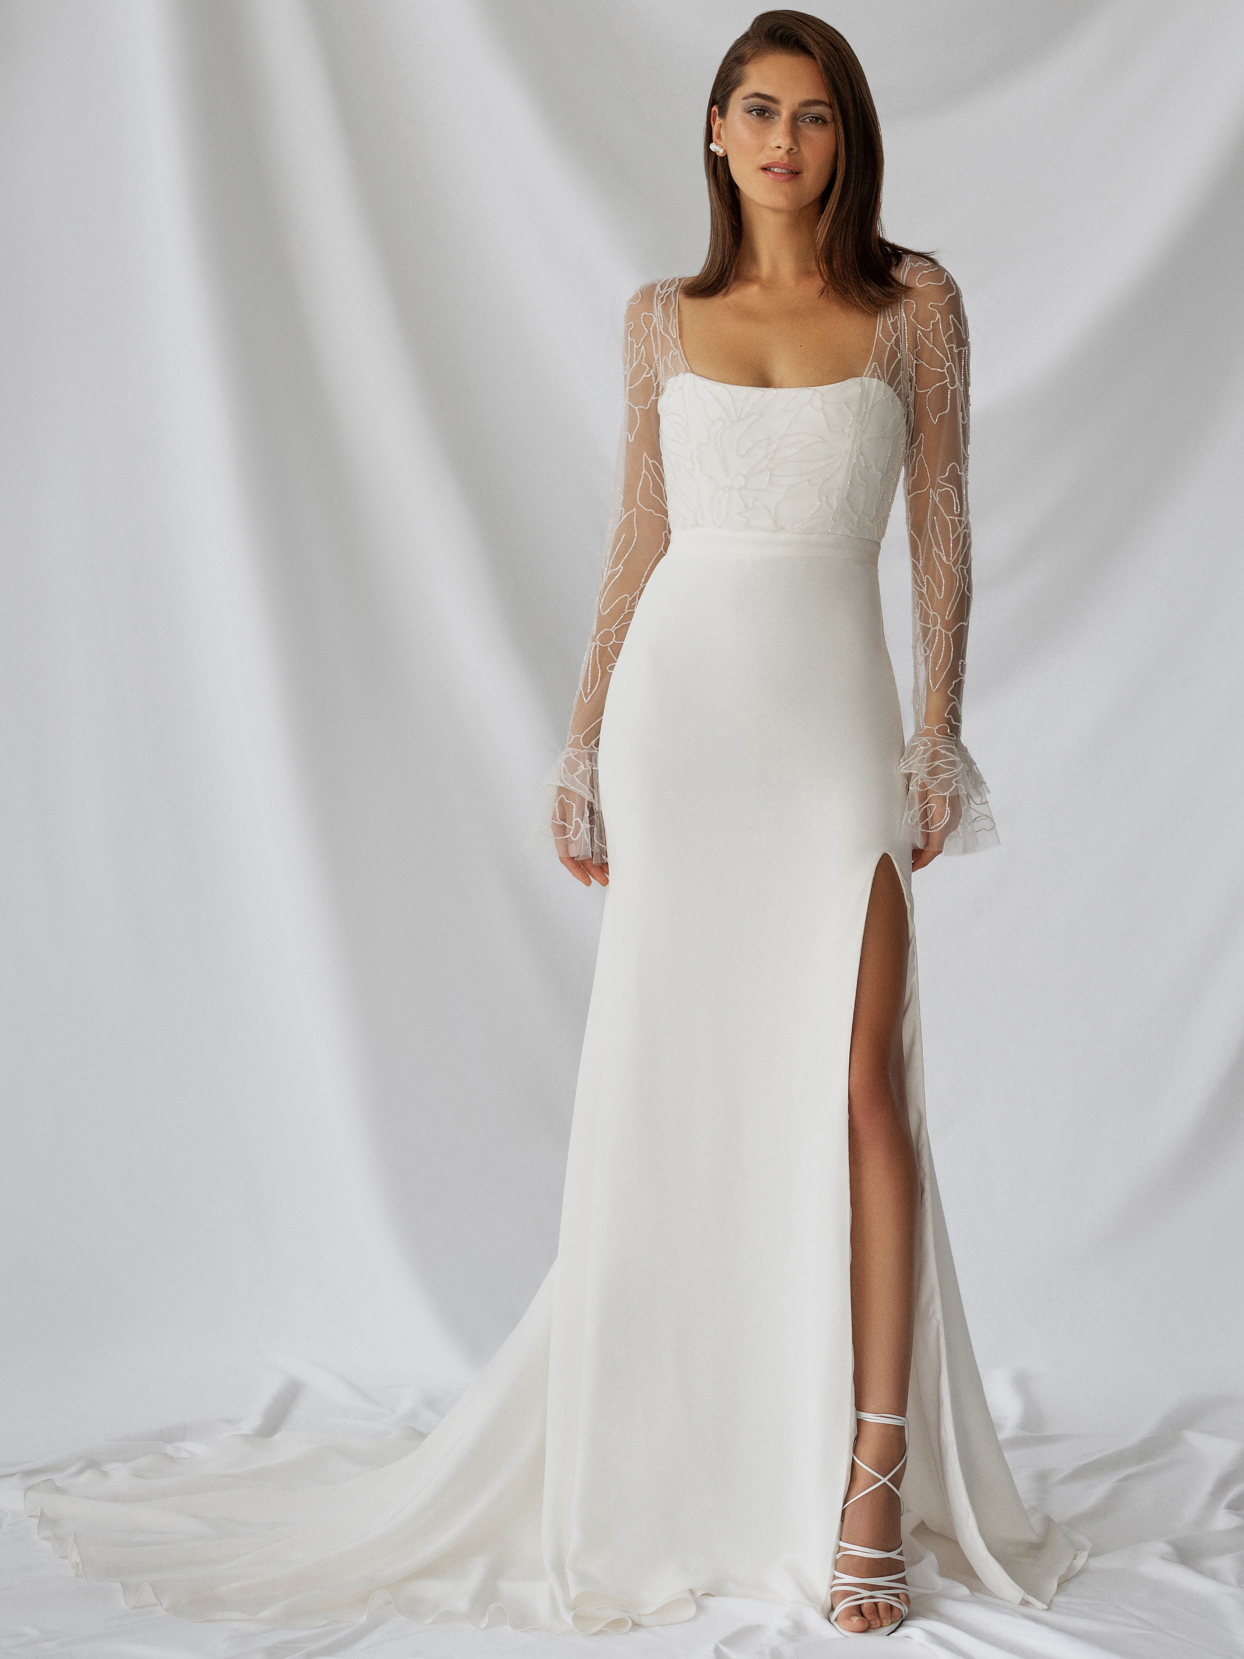 alexandra grecco illusion long sleeve high slit wedding dress fall 2021